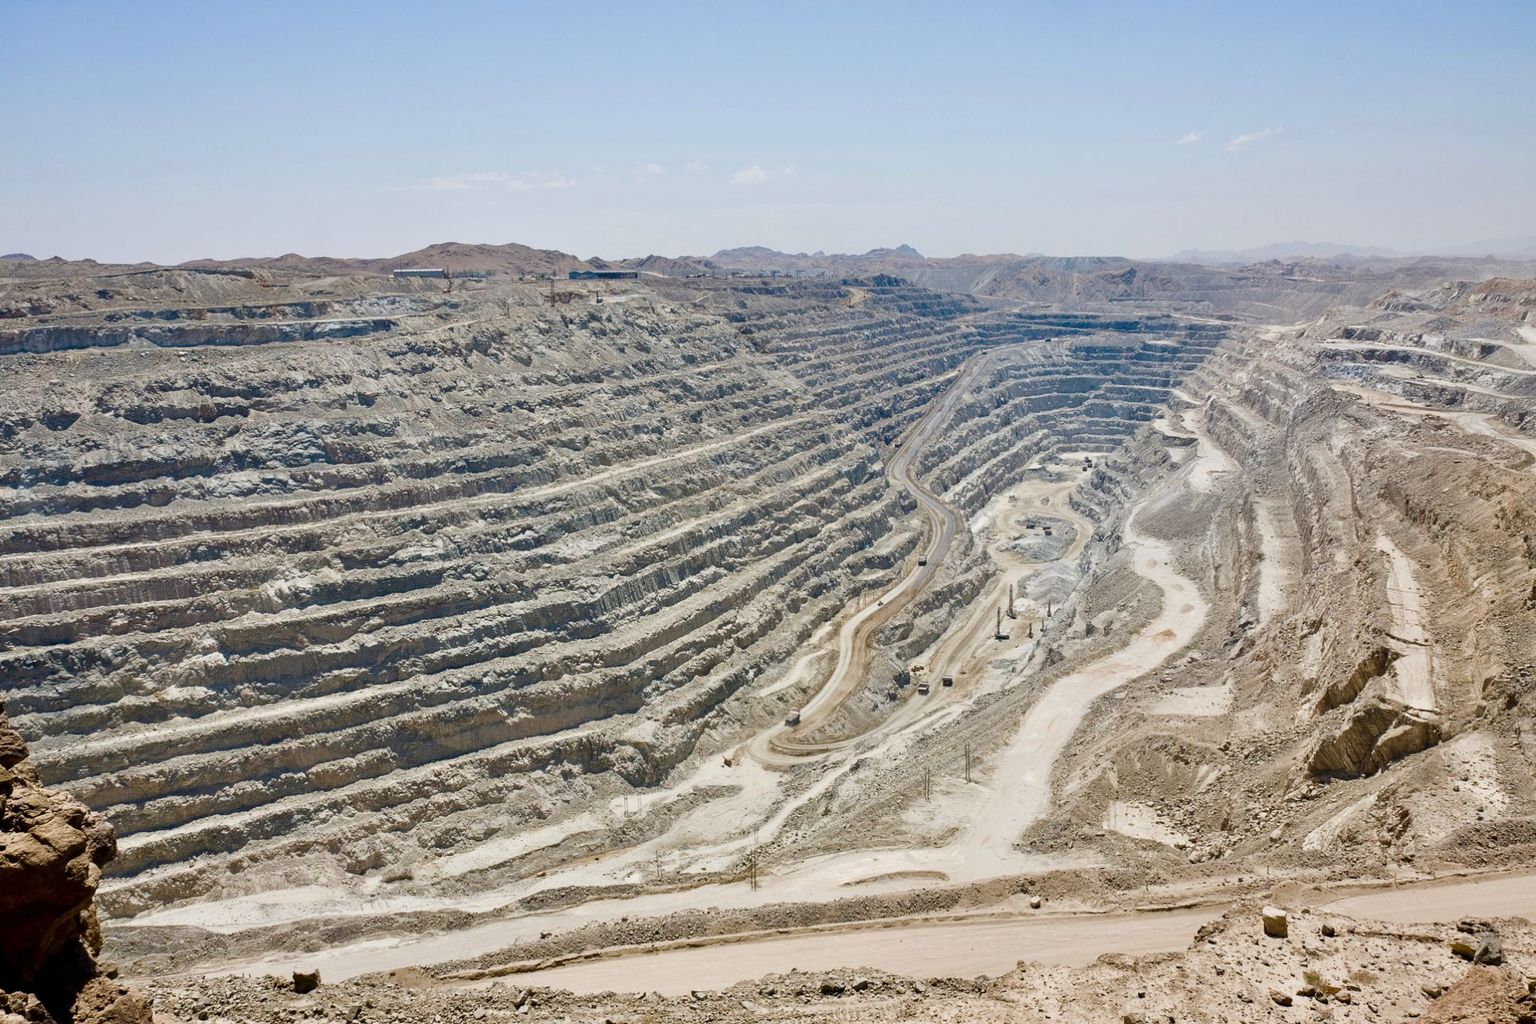 Mining in Namibia